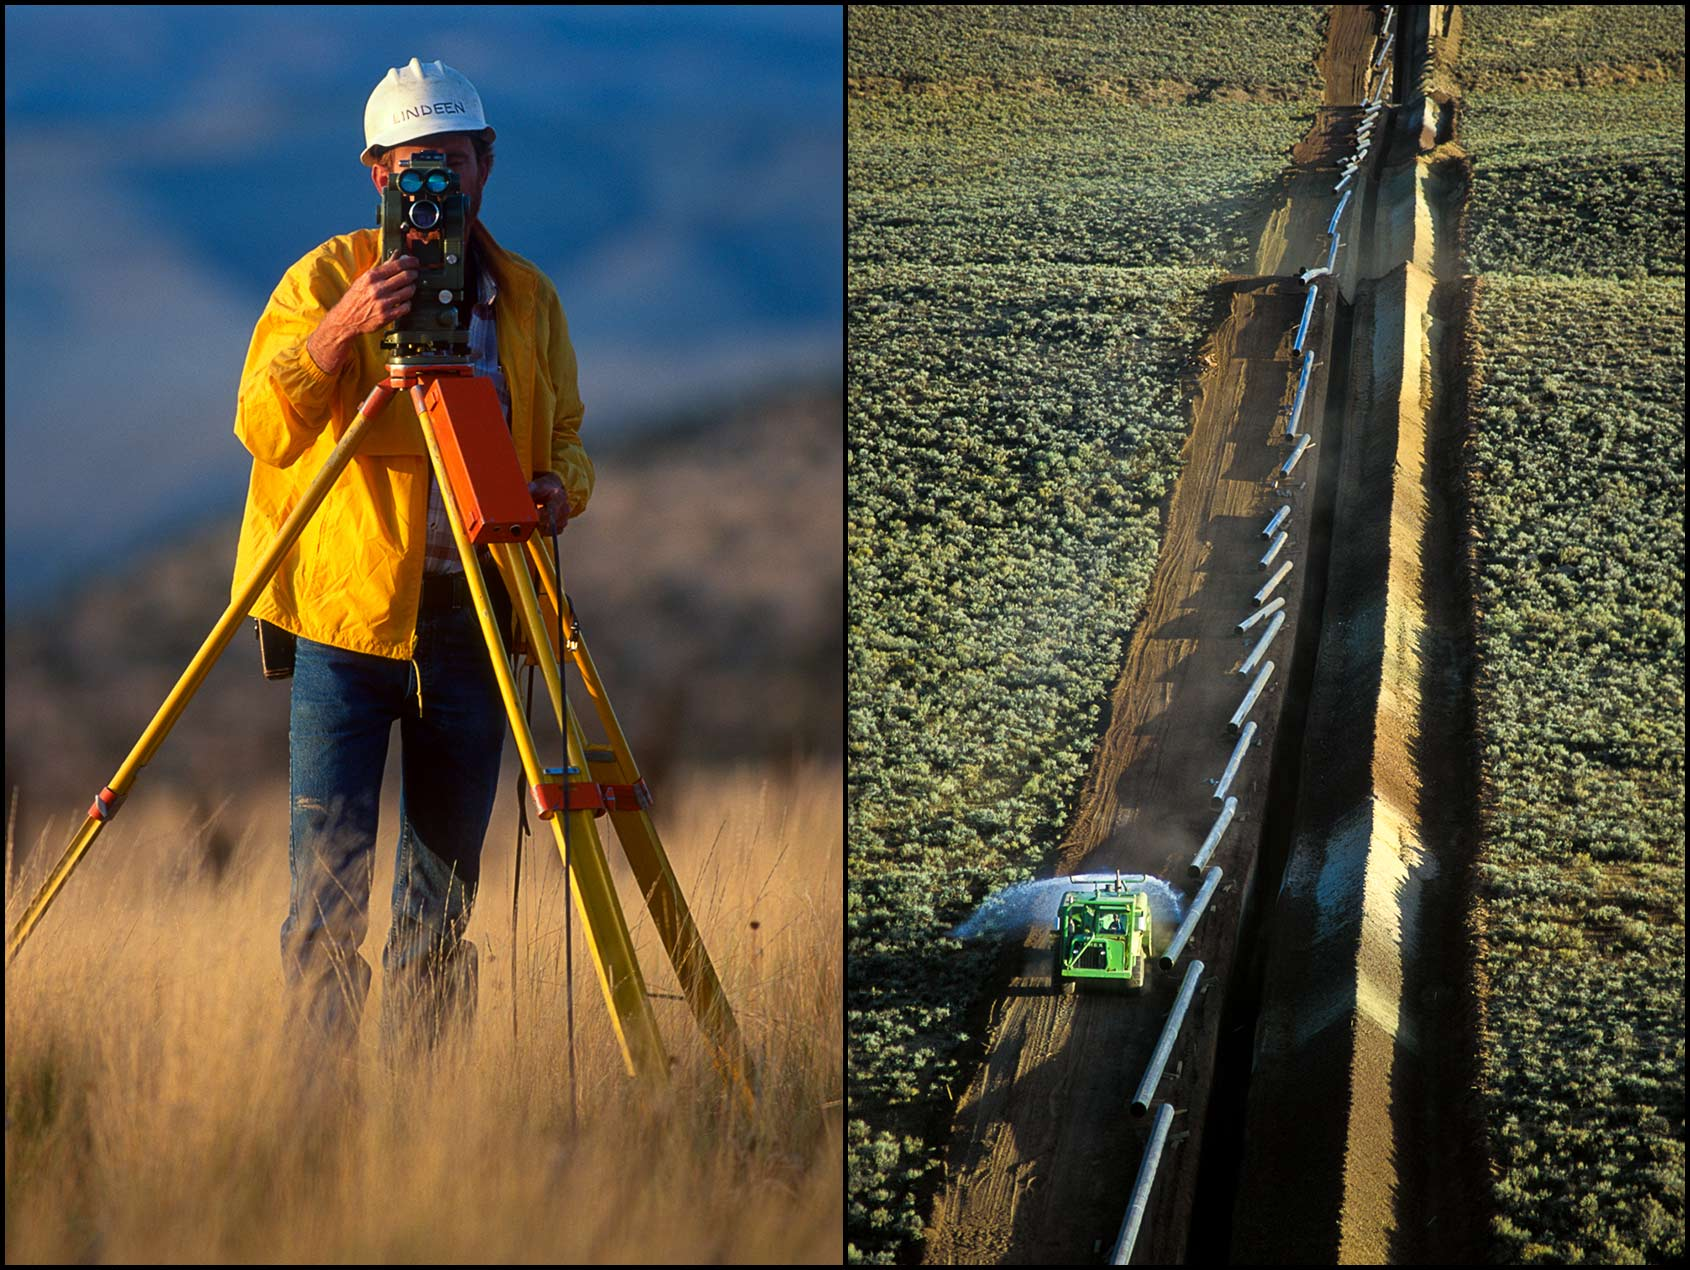 A surveyor works on a pipeline route in Colorado (L), An aerial of a water truck controlling dust along a trench for pipeline construction (R).